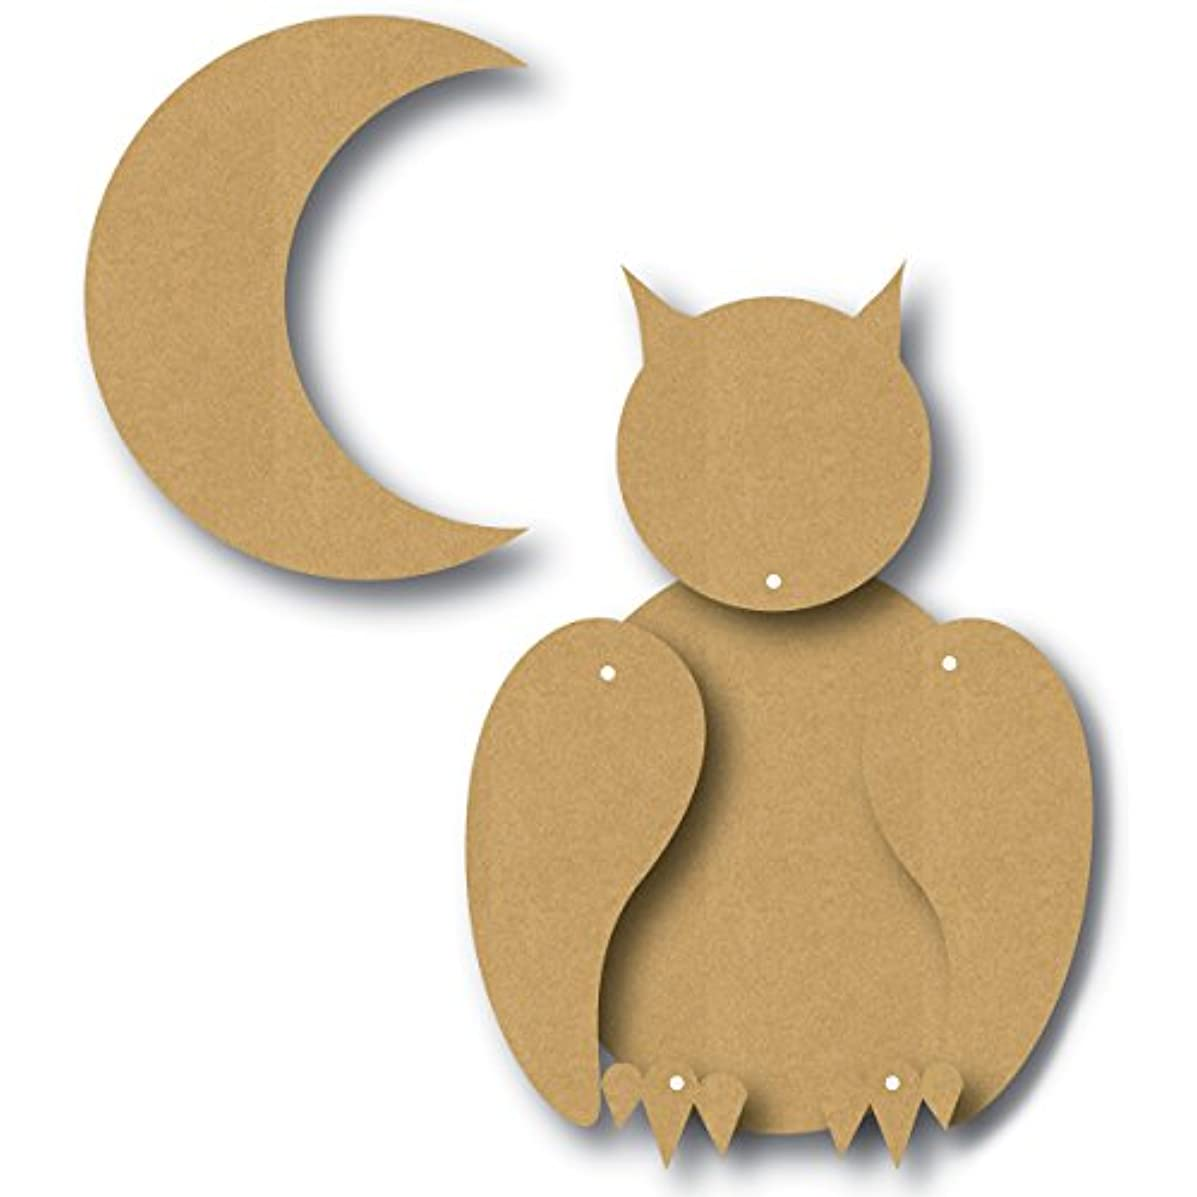 Eyeconnect Crafts Chipboard Totem Poppet, Owl, 4